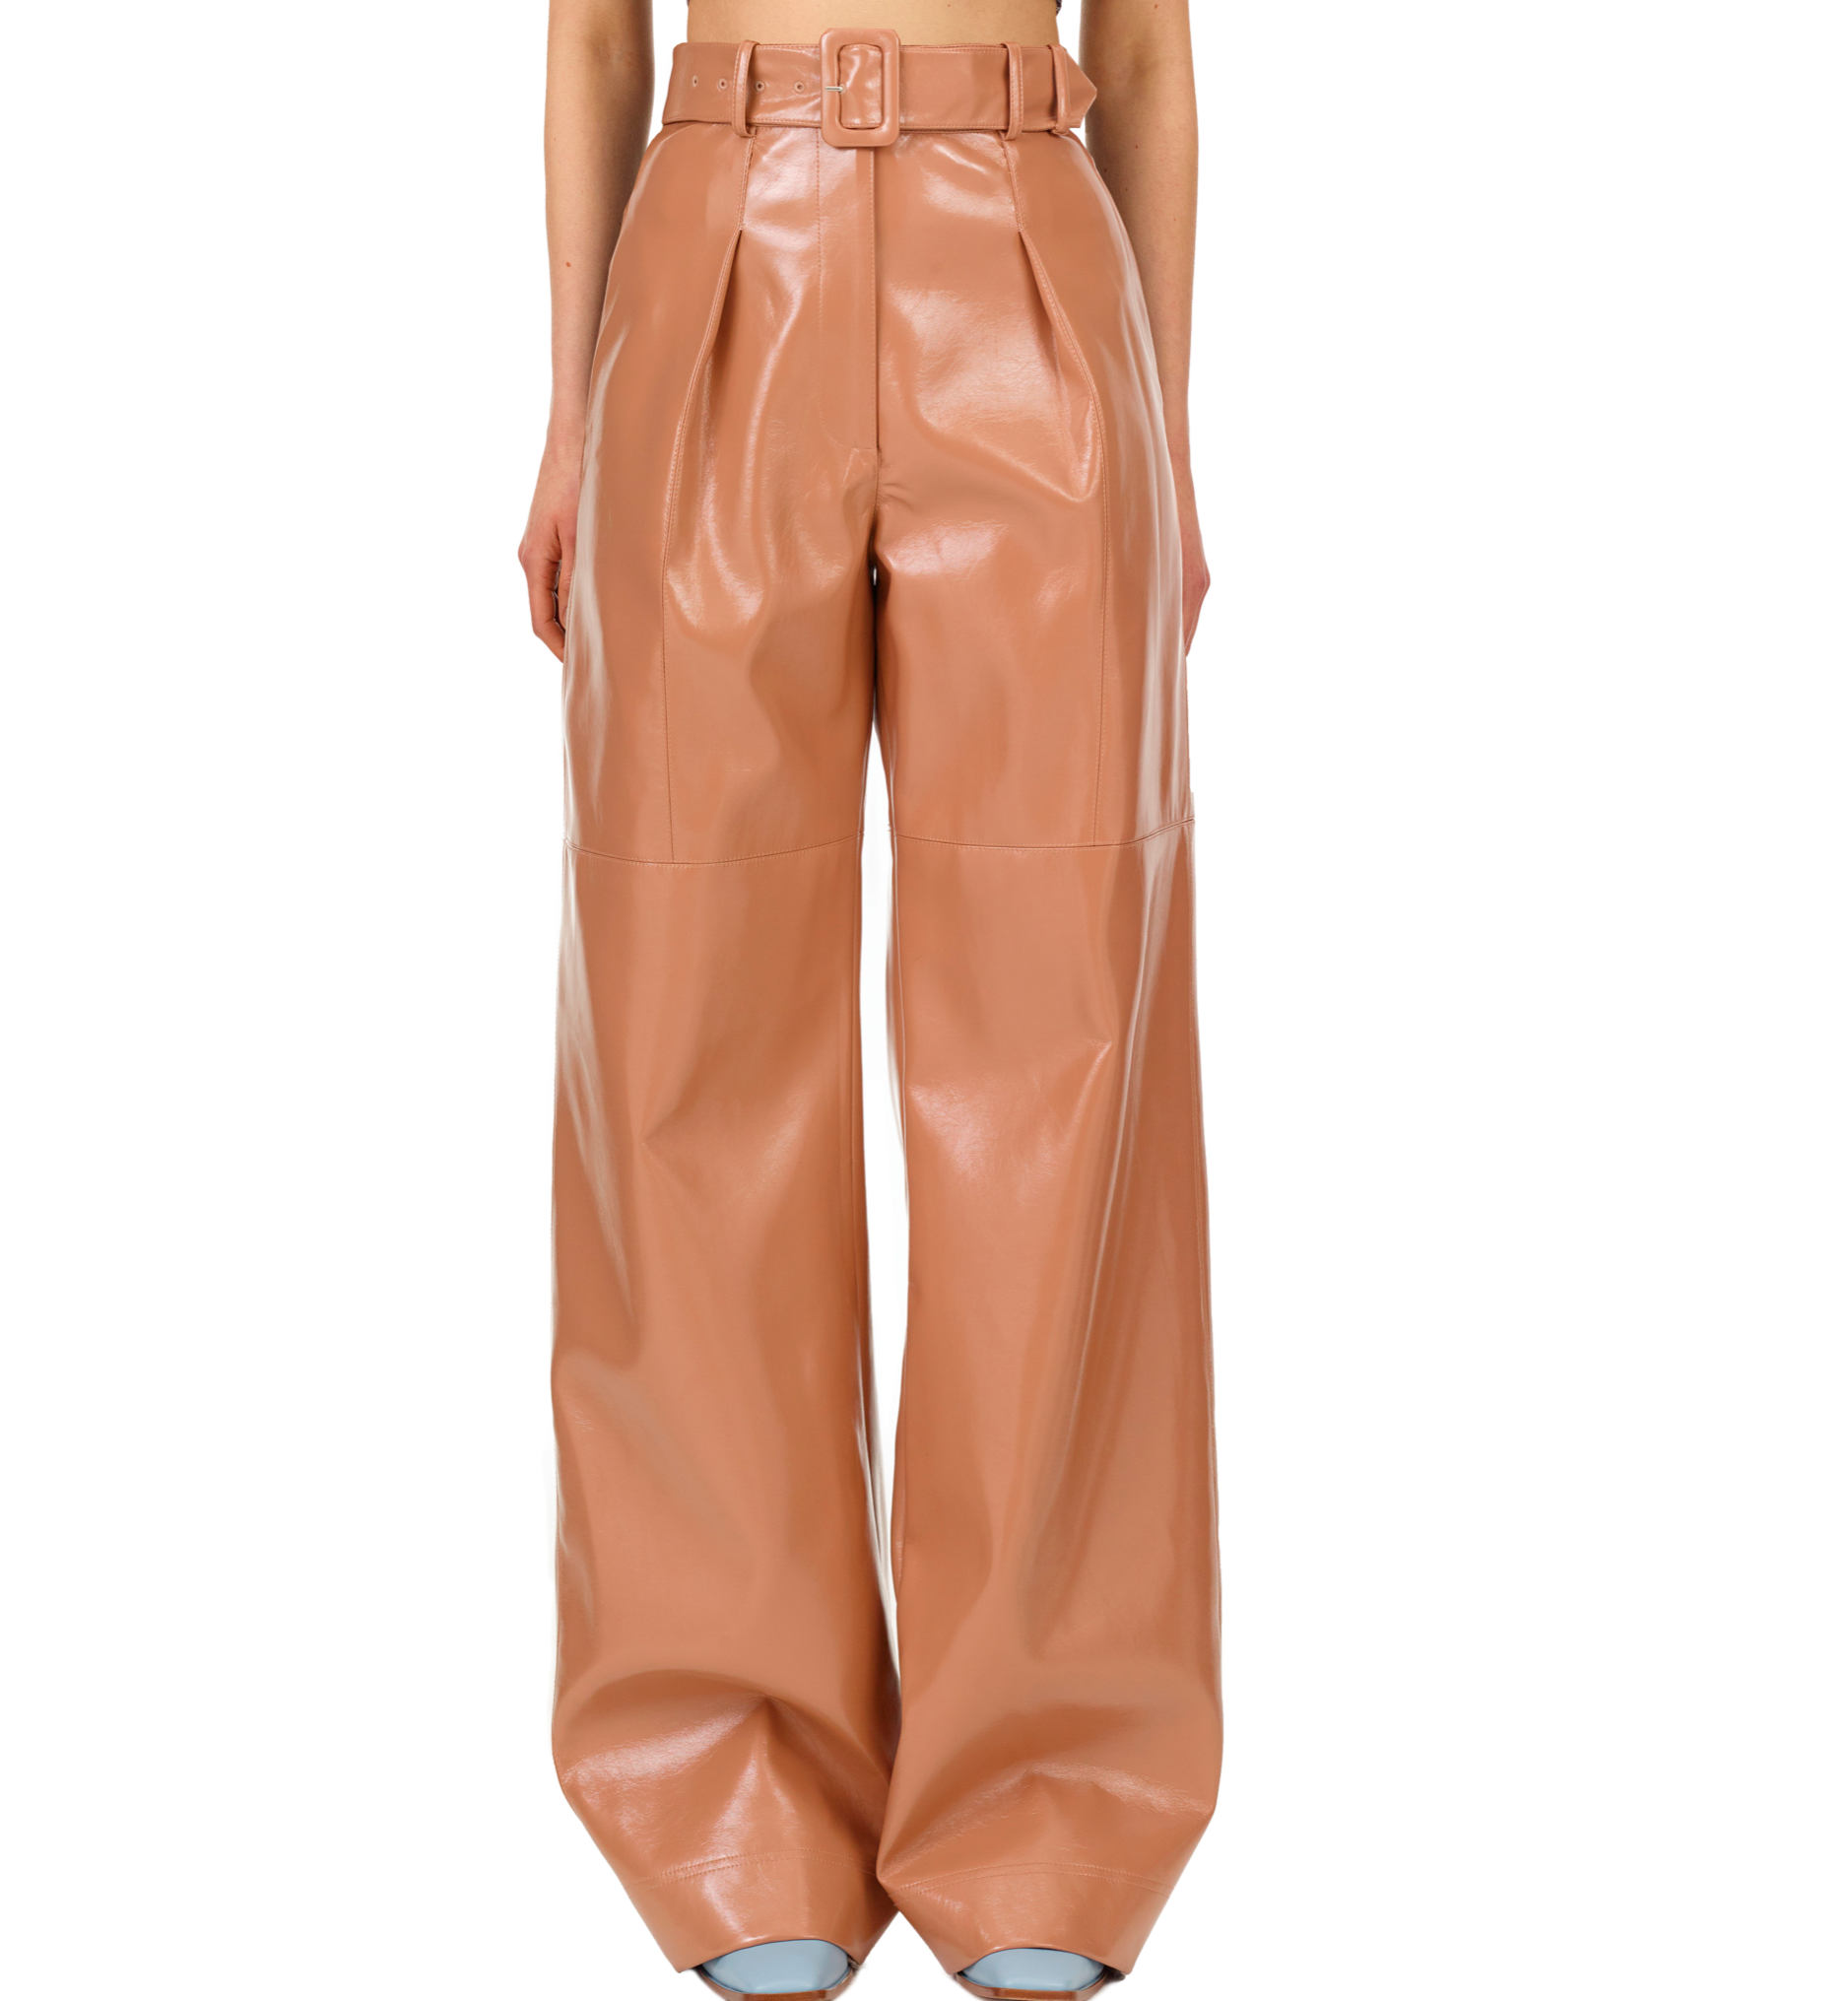 149N PATENT FAUX LEATHER TROUSERS